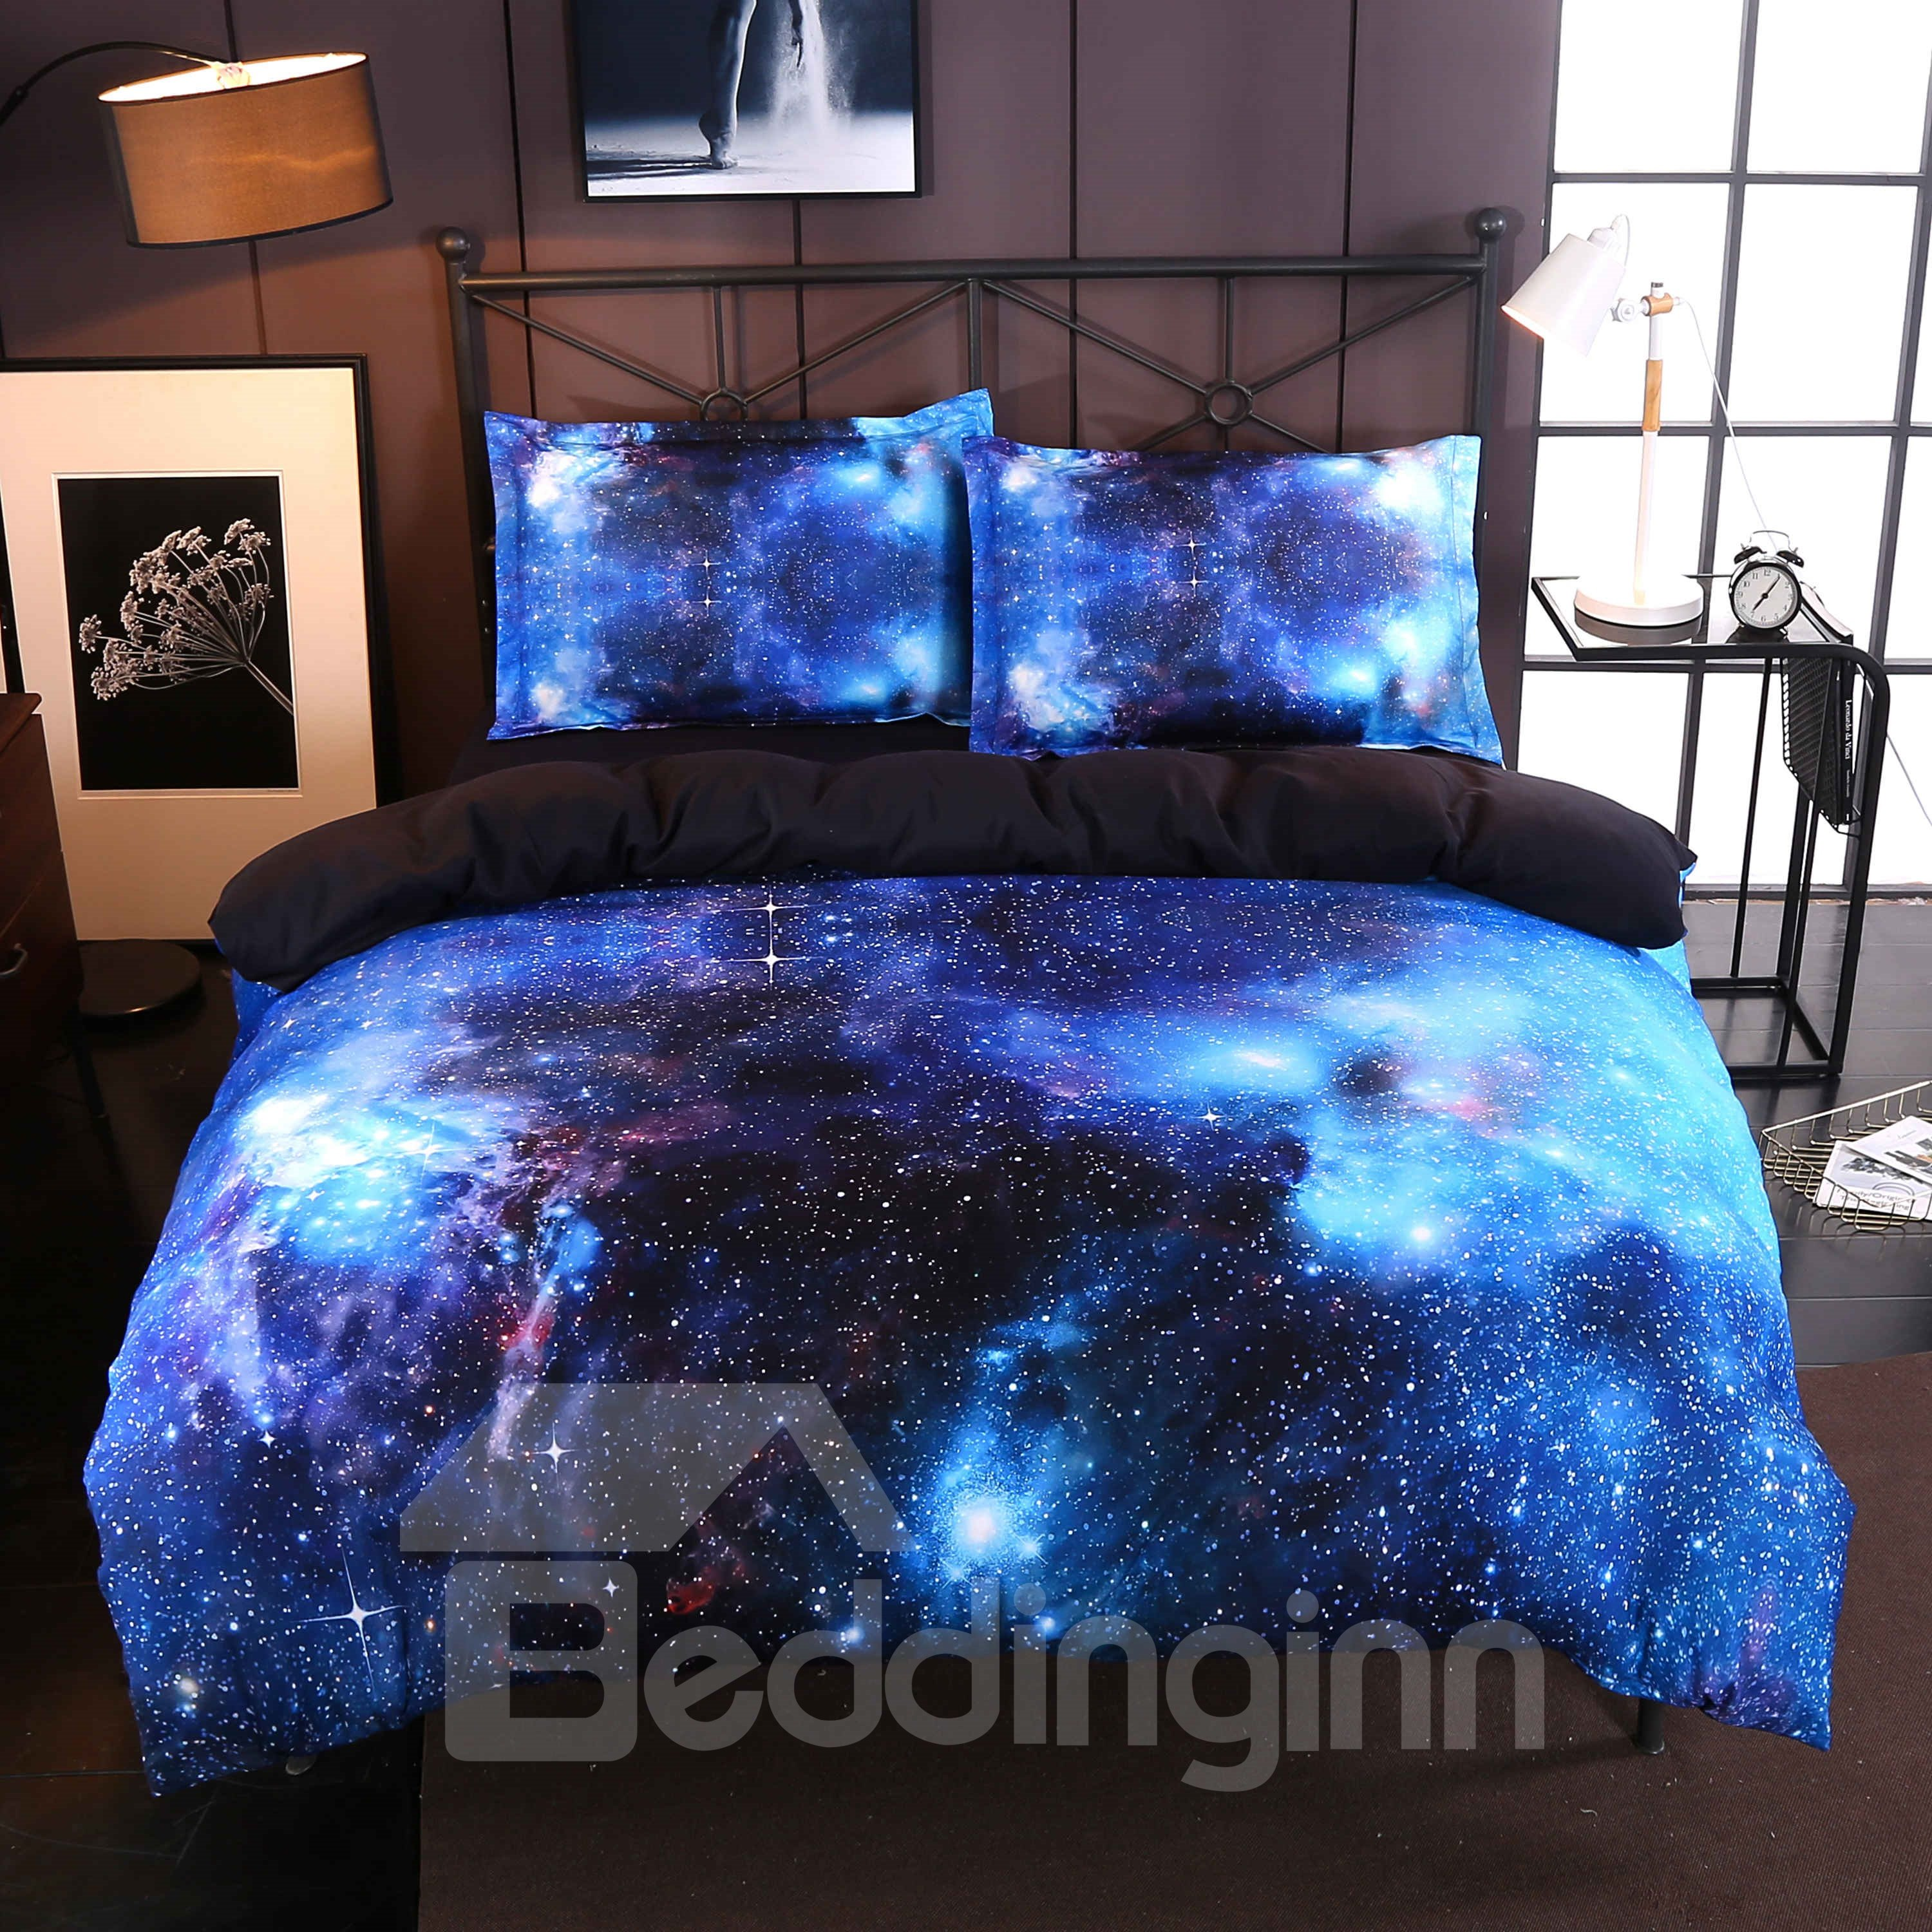 3d Blue Galaxy Realistic Style Printed 4 Piece Bedding